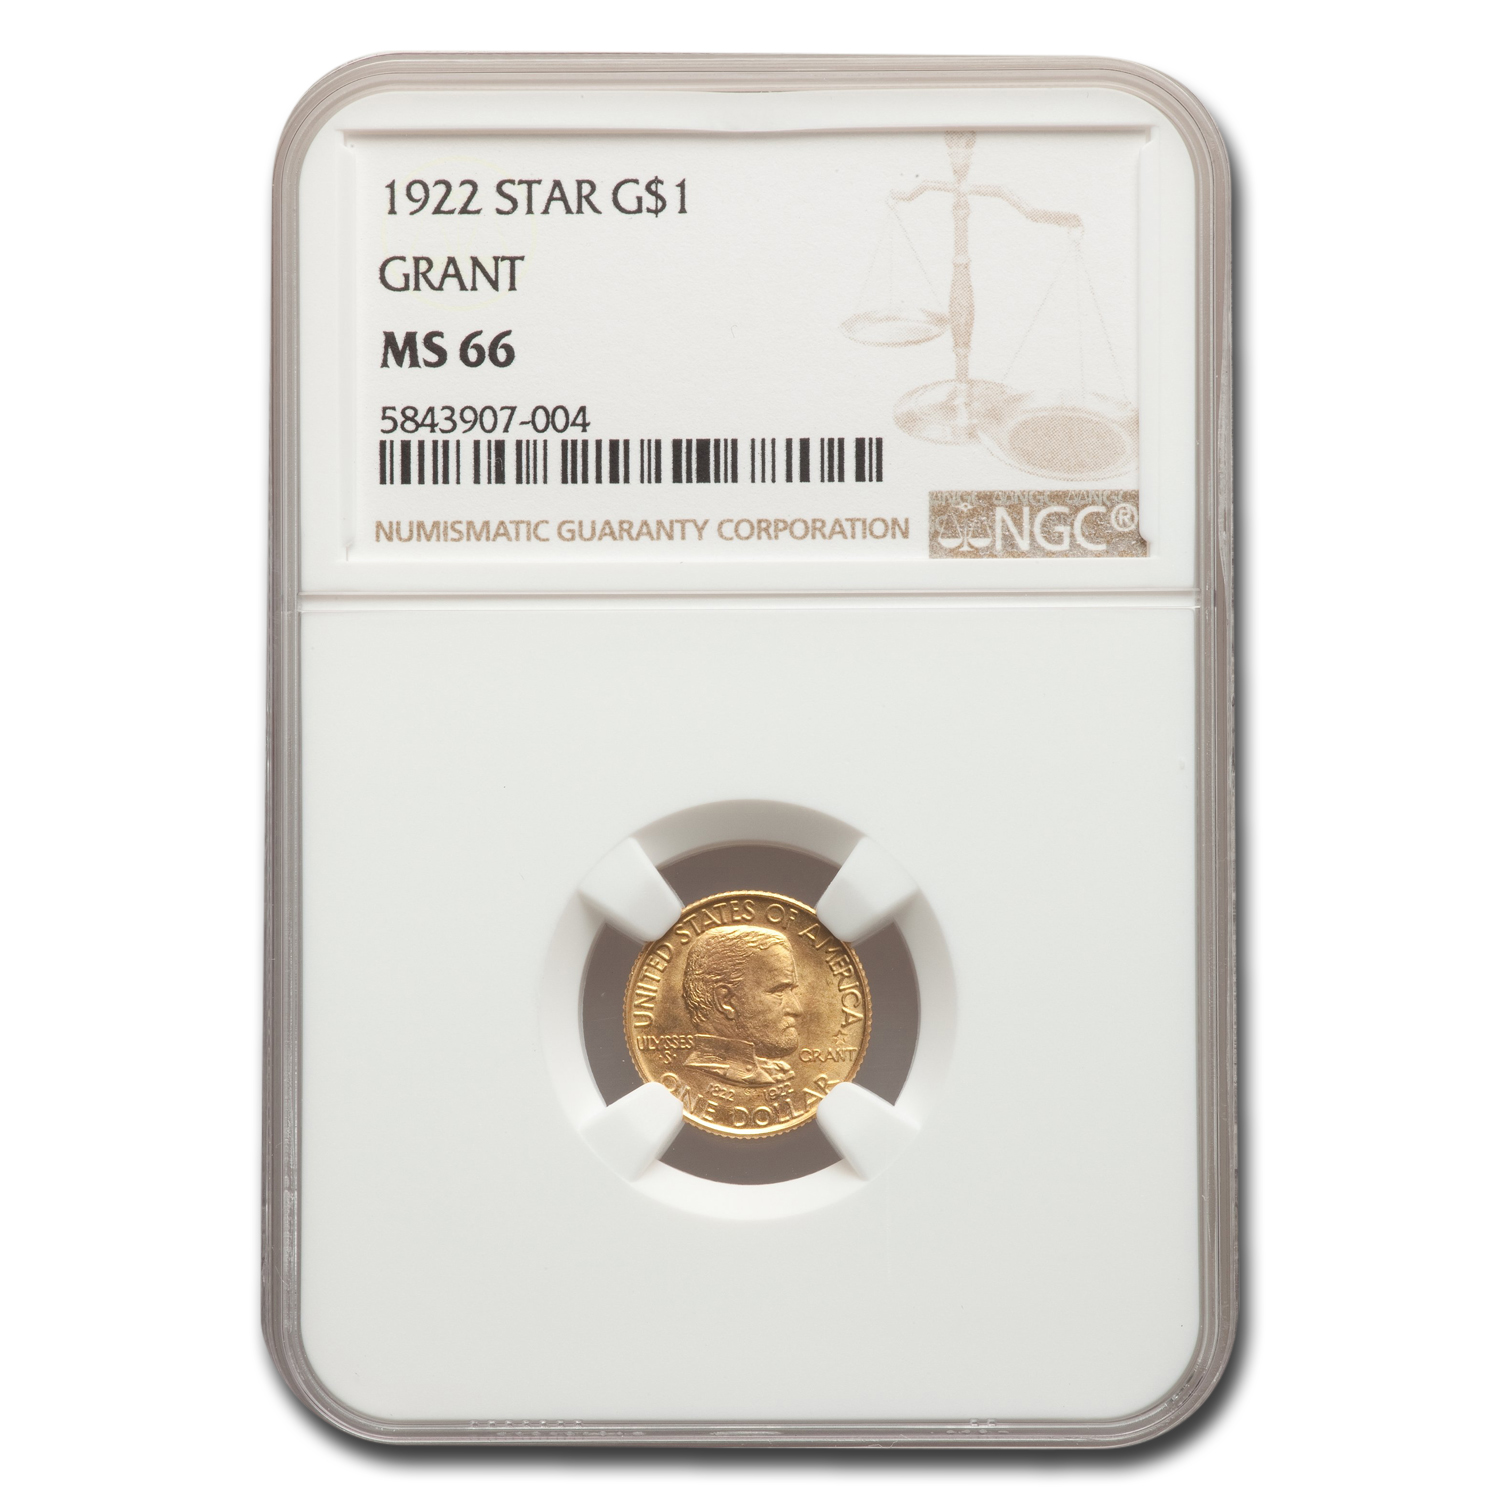 1922 Gold $1.00 Grant w/Star MS-66 NGC